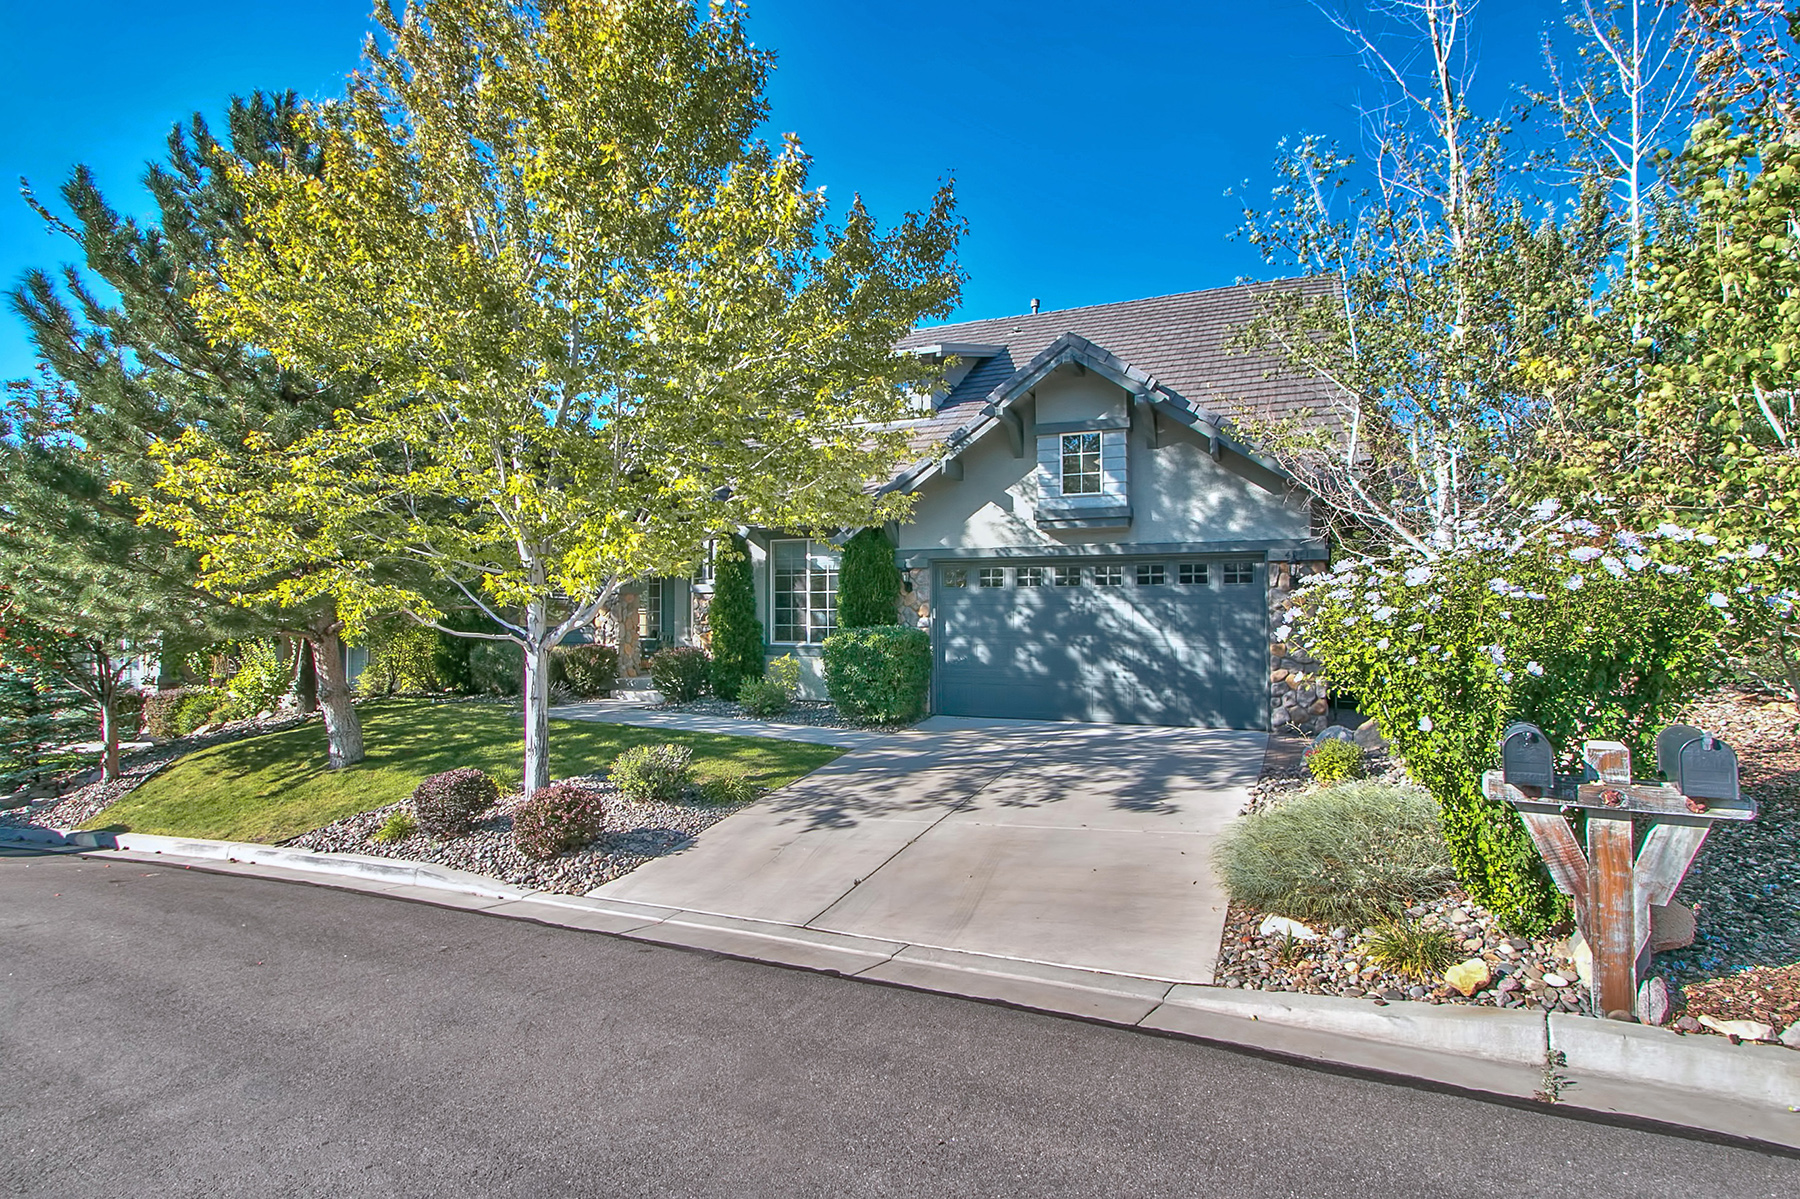 Single Family Home for Sale at 4951 Fall Creek Court Reno, Nevada 89519 United States